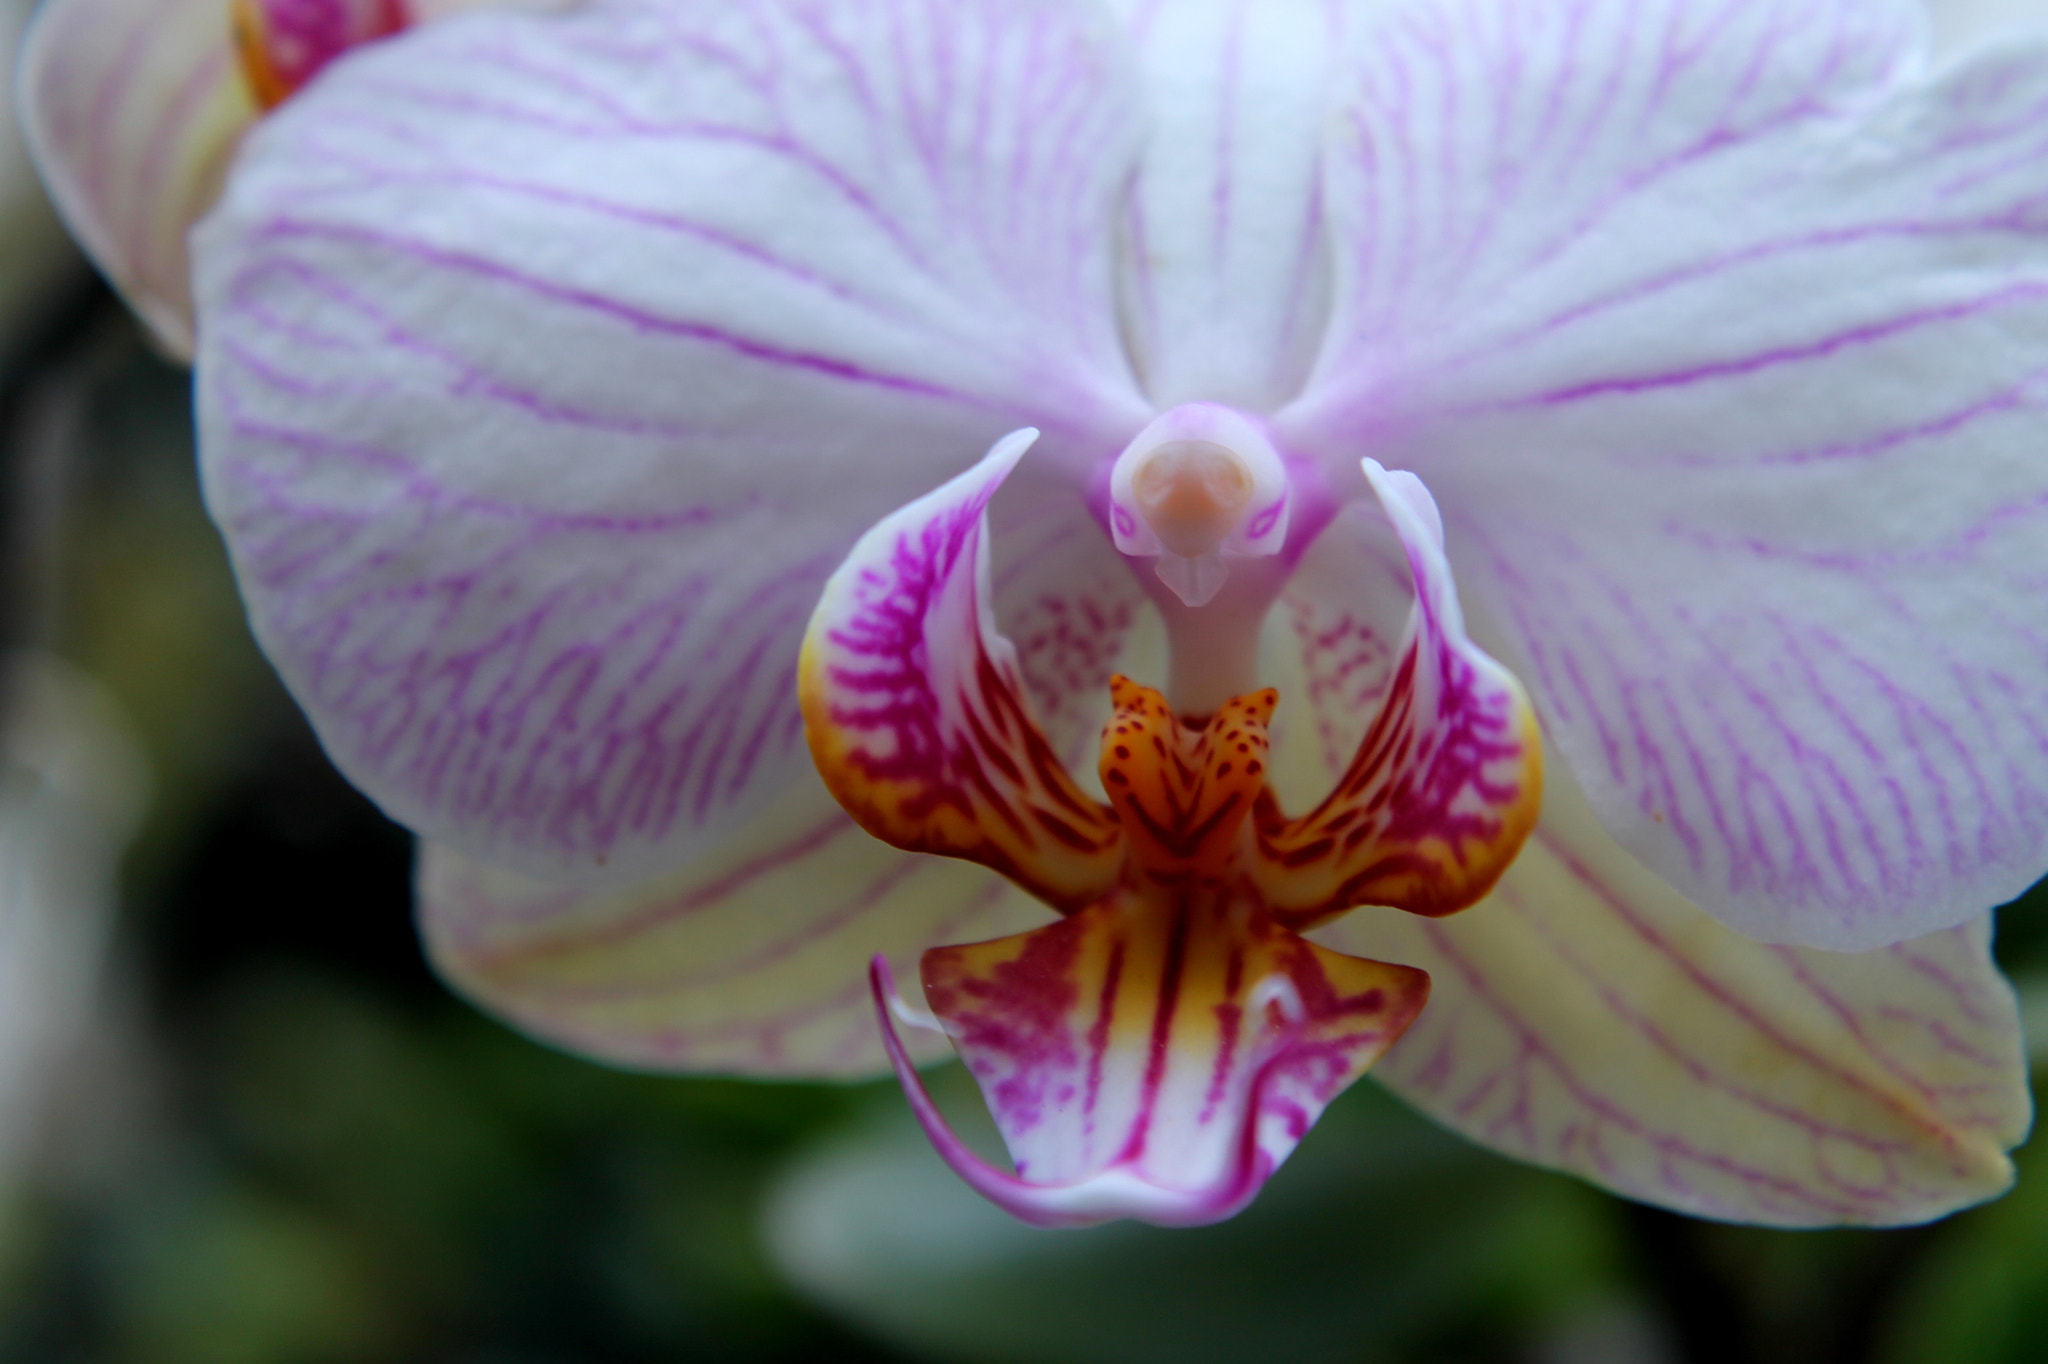 Photograph Orchid by Monique K. on 500px